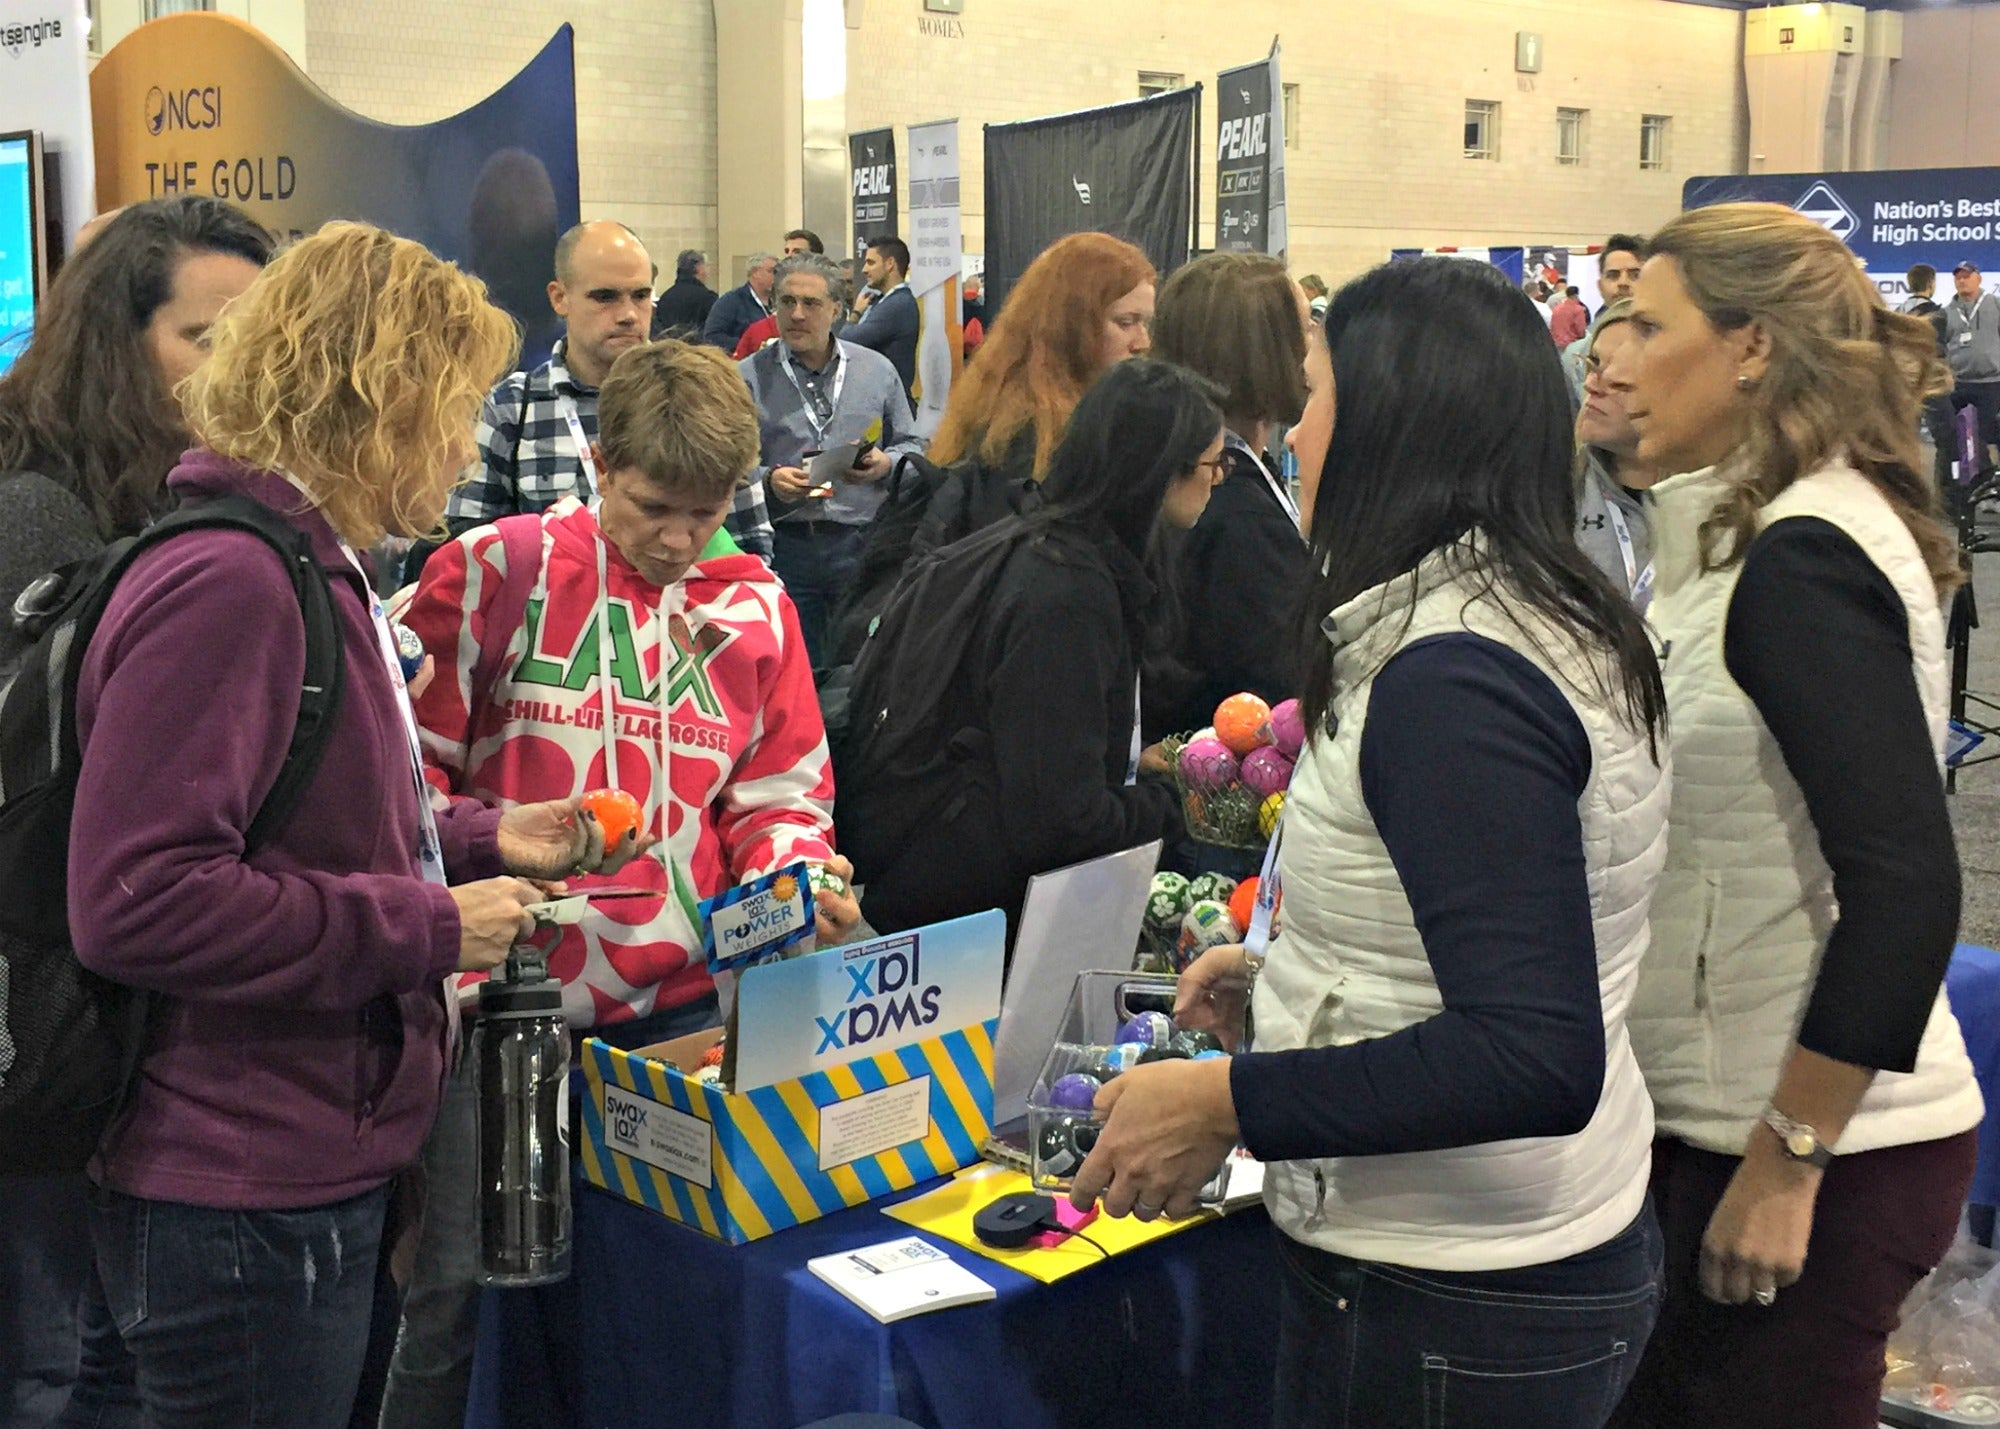 Fans flock to Swax Lax booth at LaxCon 2020